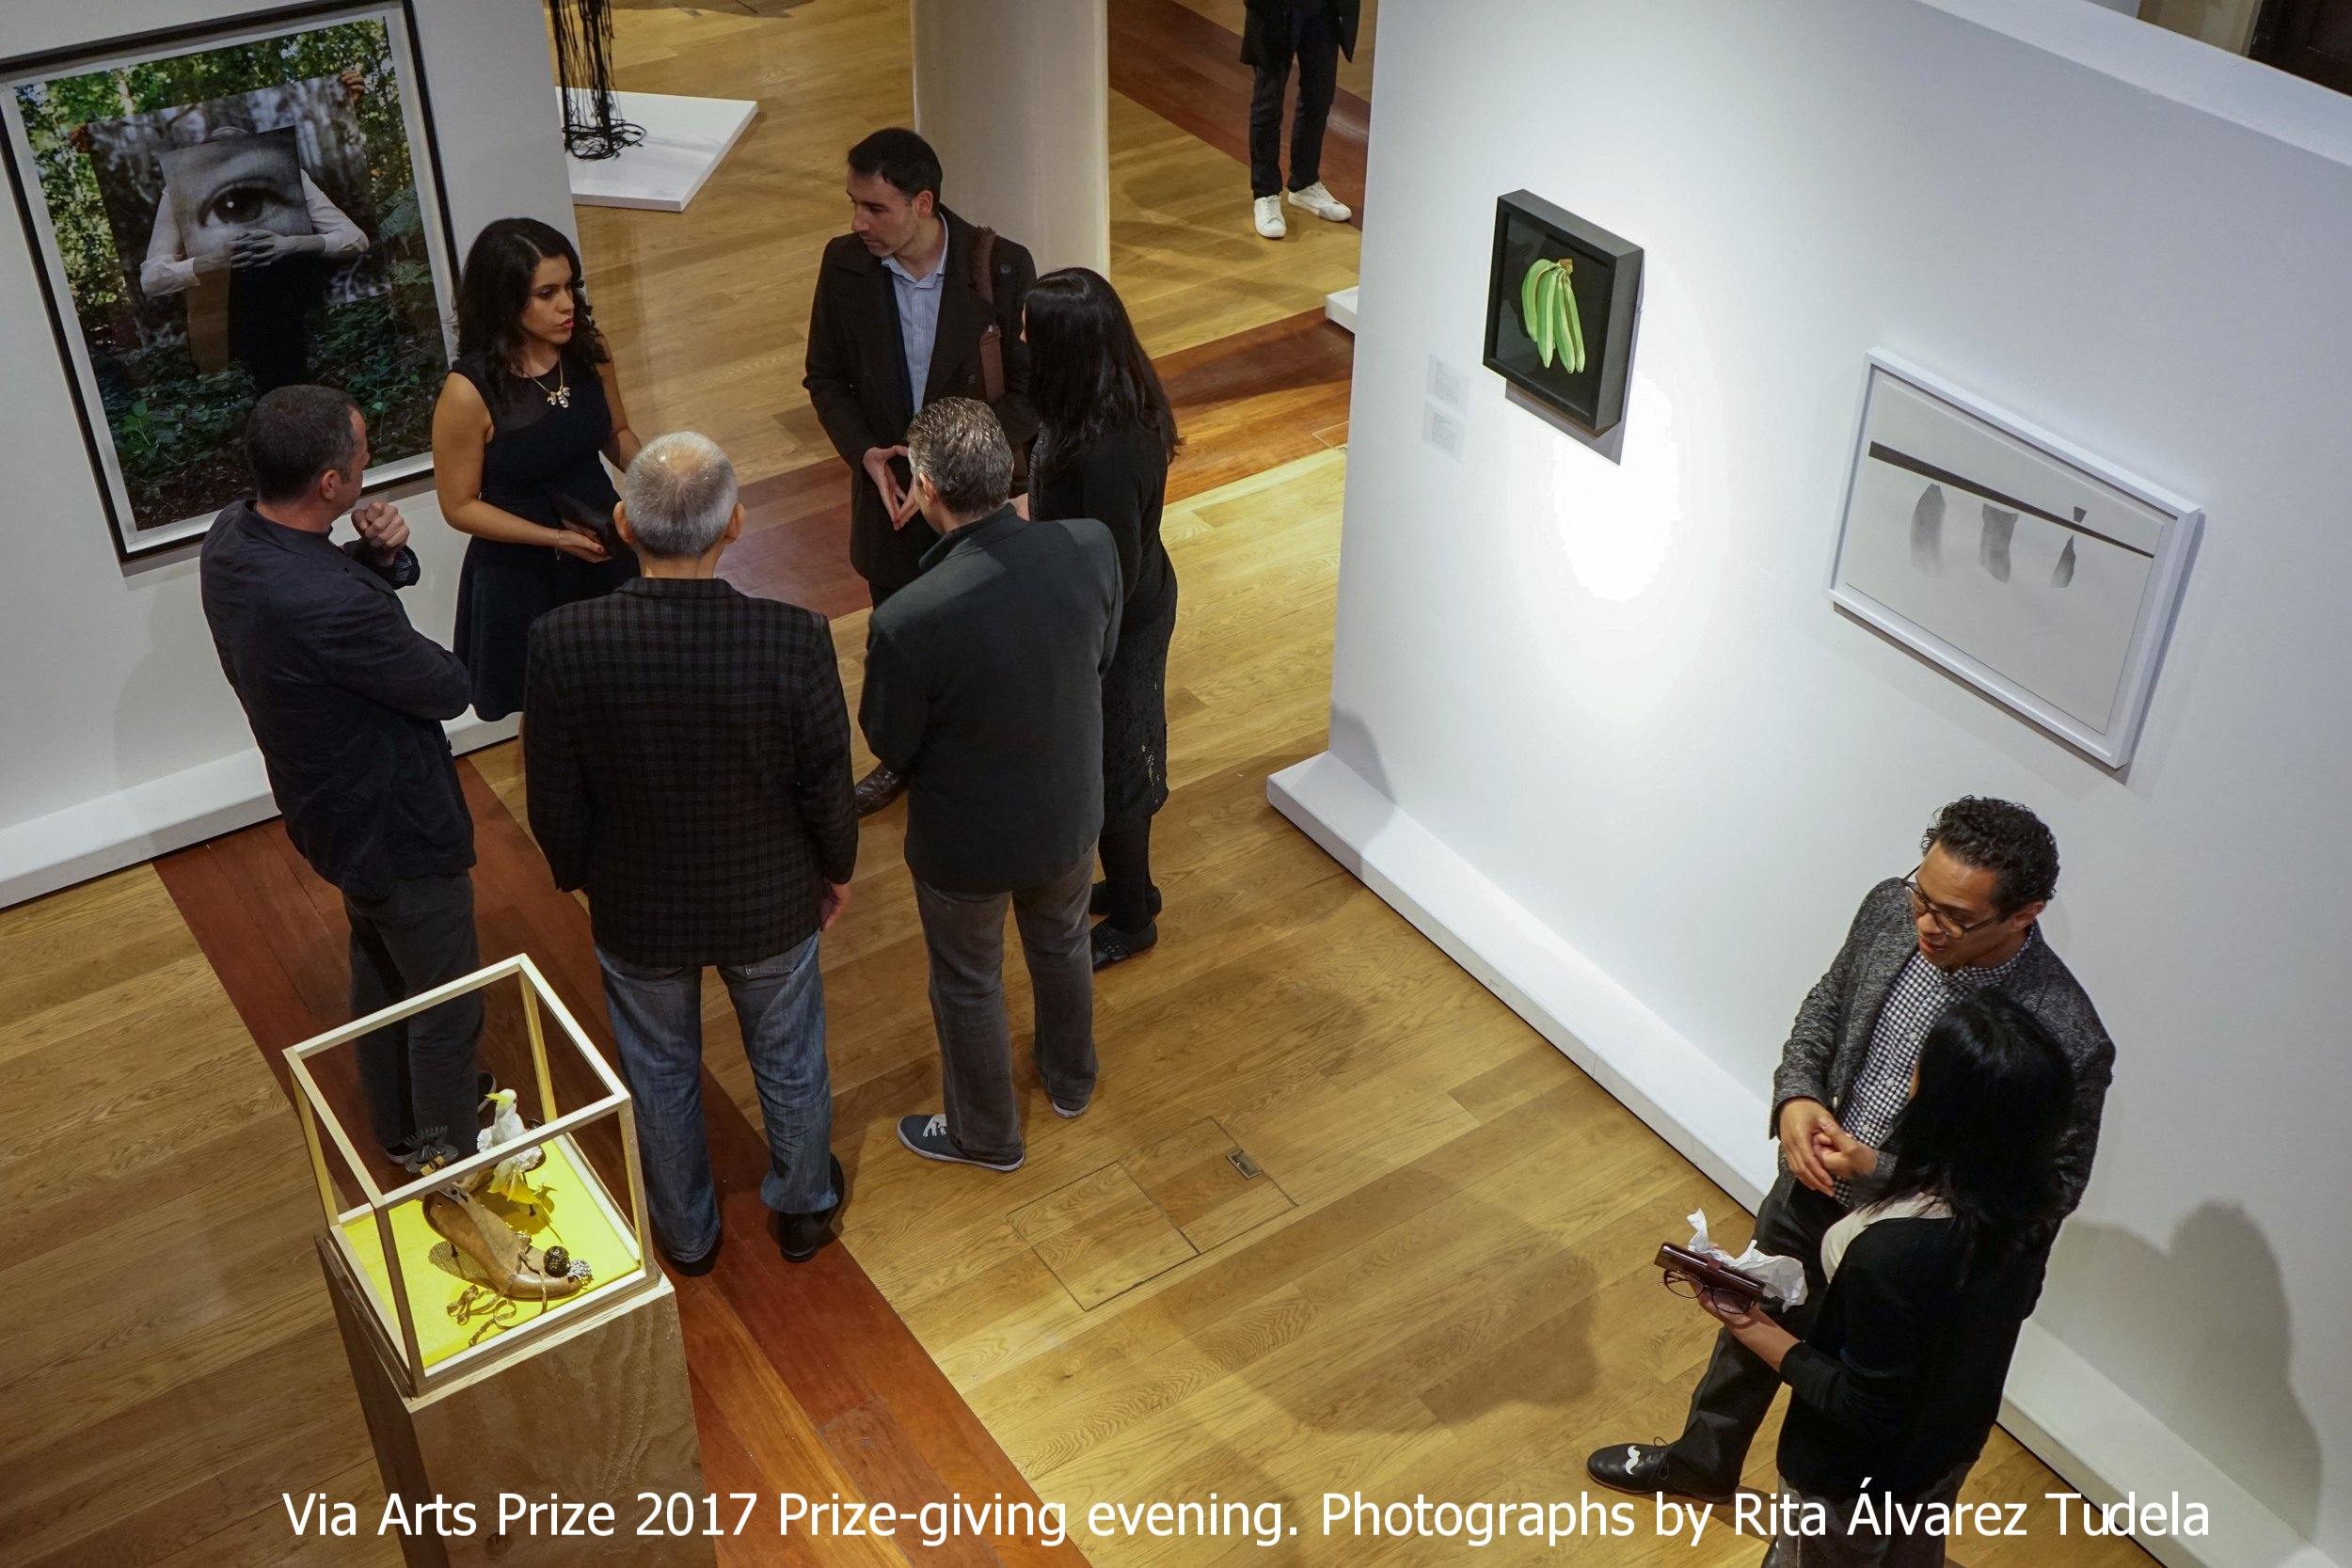 Via Arts Prize 2017 Prize-giving evening. Photographs by Rita Álvarez Tudela